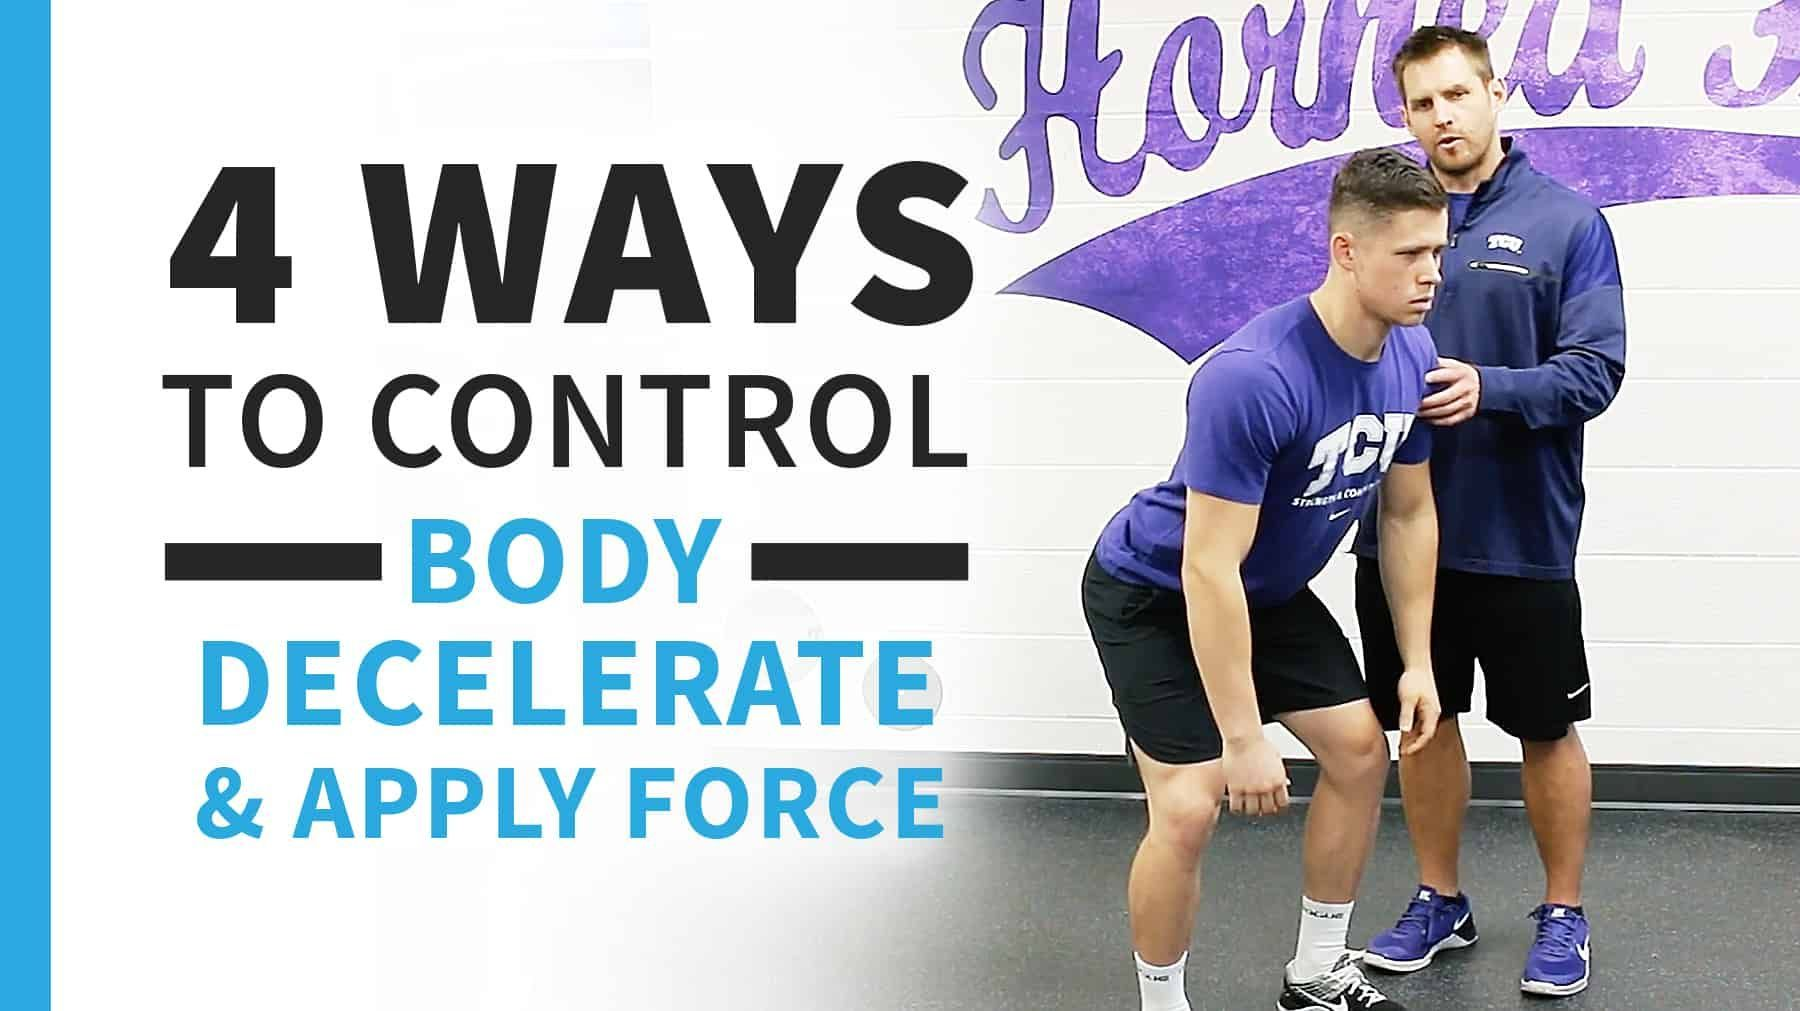 Snap Downs 4 Ways To Control Your Body Decelerate And Apply Force The Art Of Coaching Volleyball Coaching Volleyball Strength And Conditioning Coach How To Apply